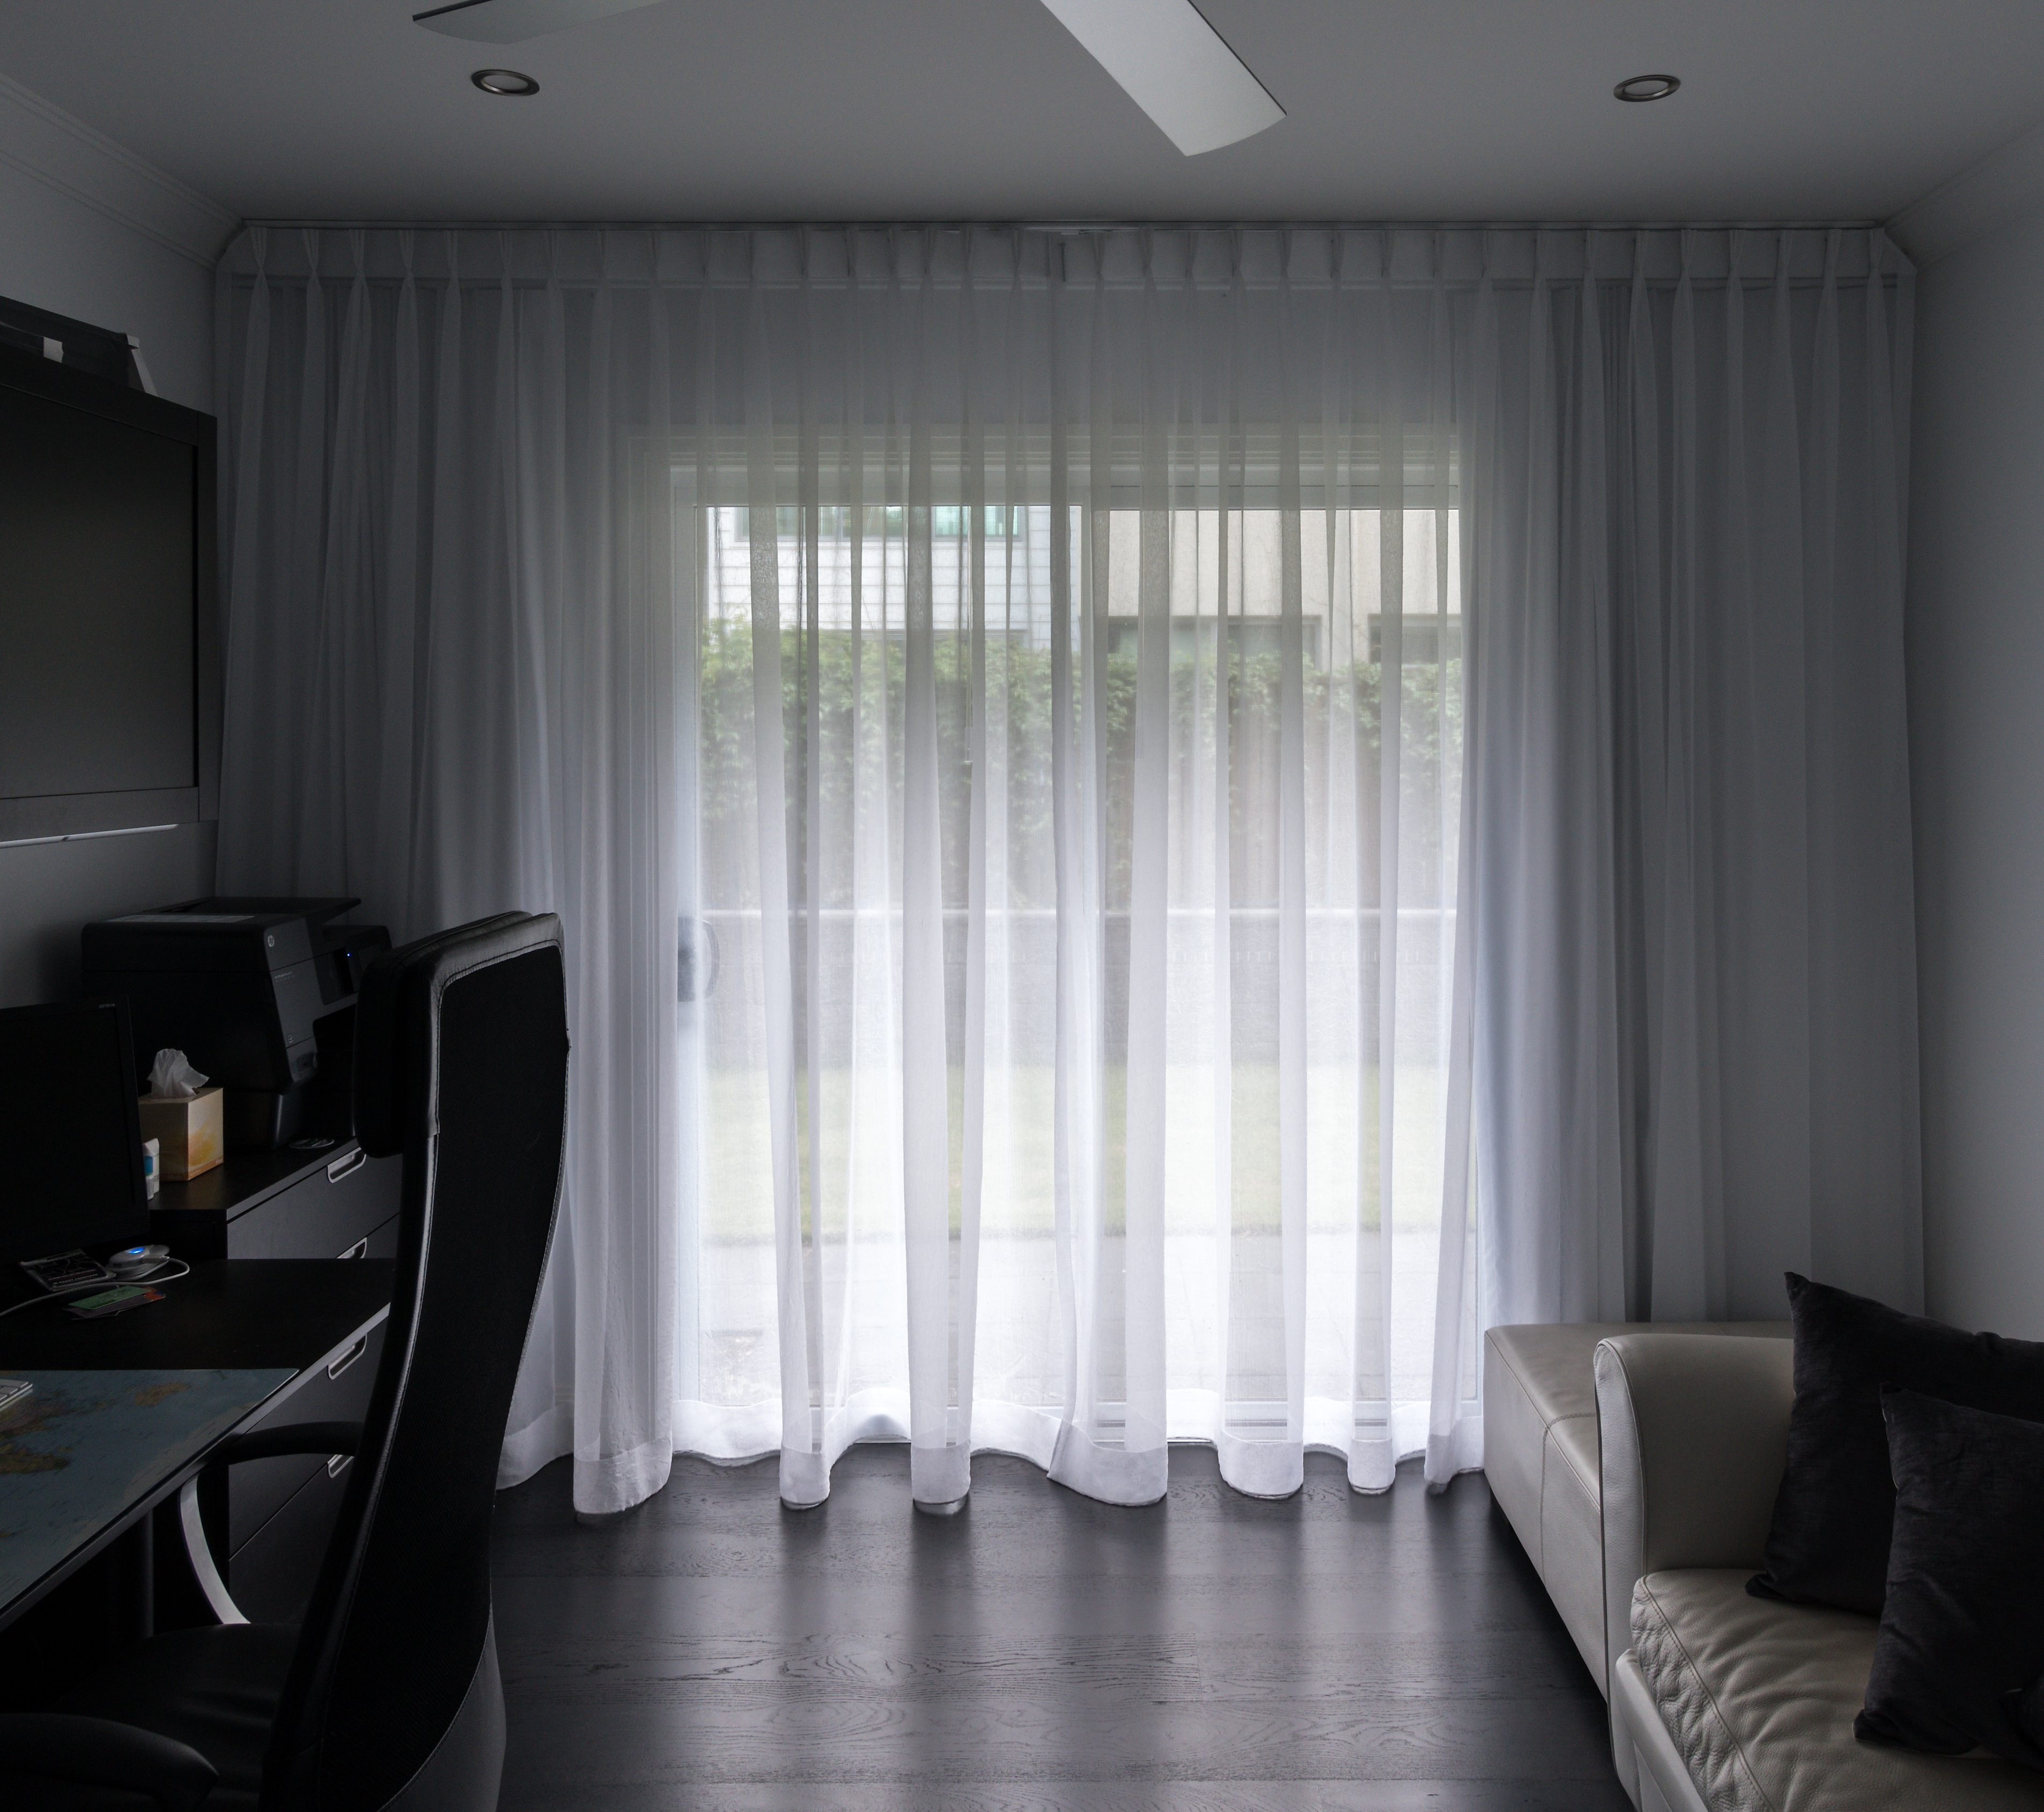 Wall to wall TPP sheer, shaped ends, from ceiling, no flooding, block out lining behind-sheers